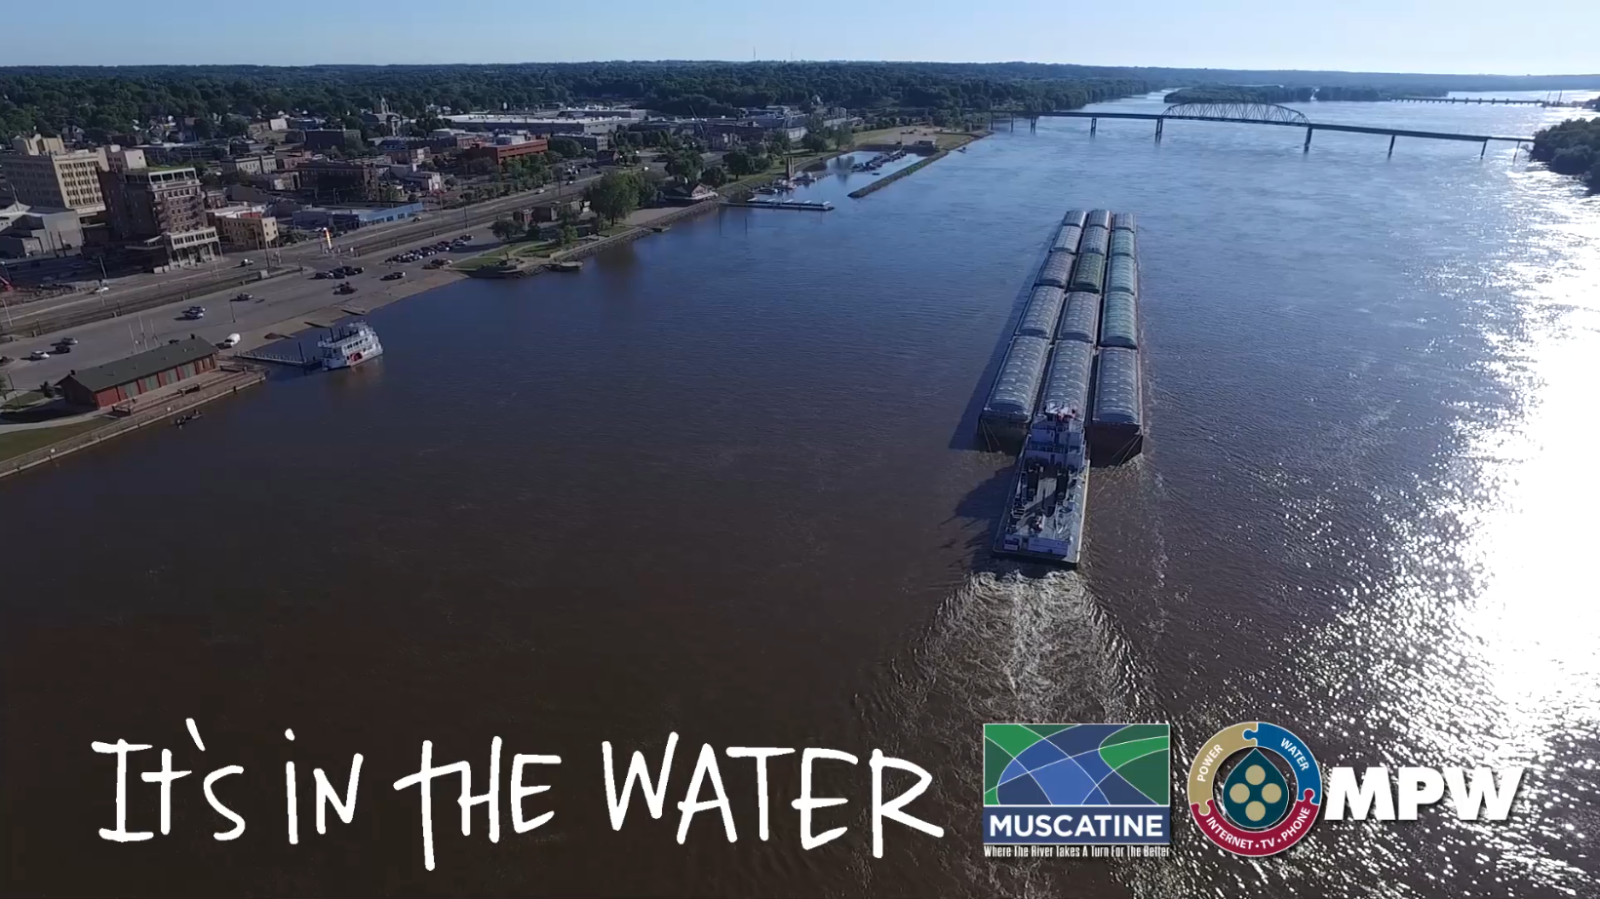 Barge on Mississippi River with Text on Image